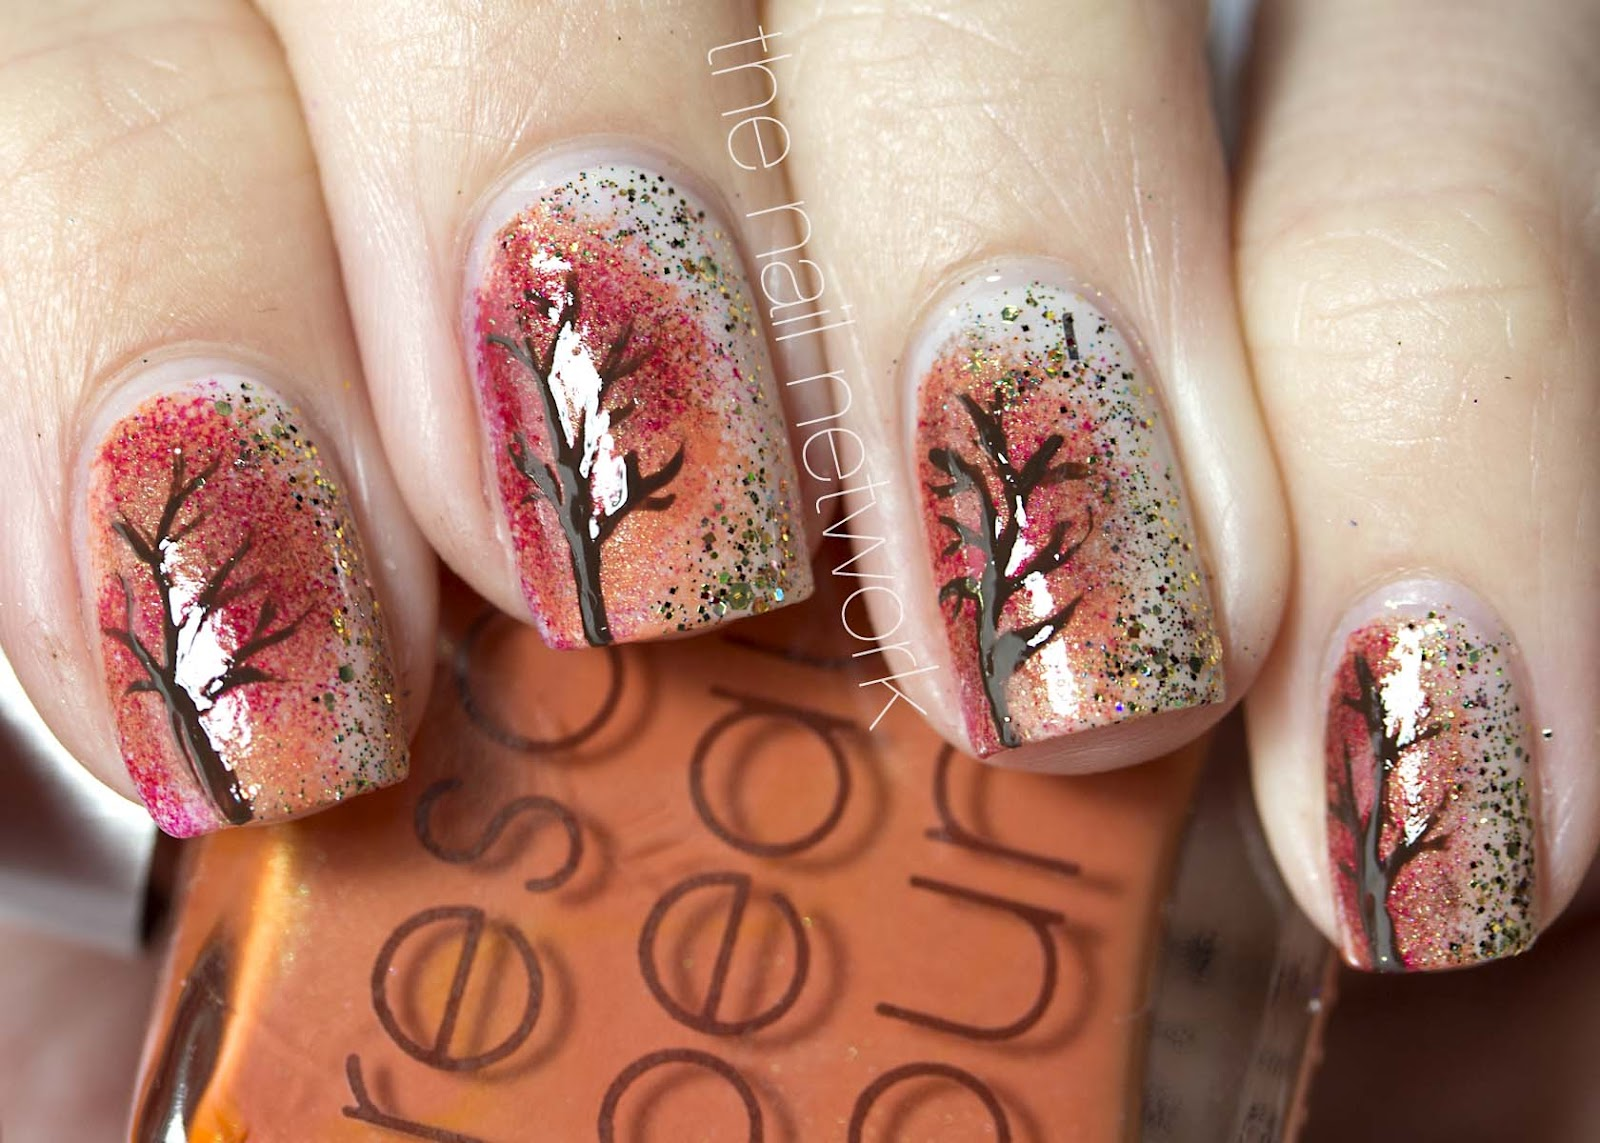 The Nail Network: Festive Autumn Tree/Foliage Nail Art